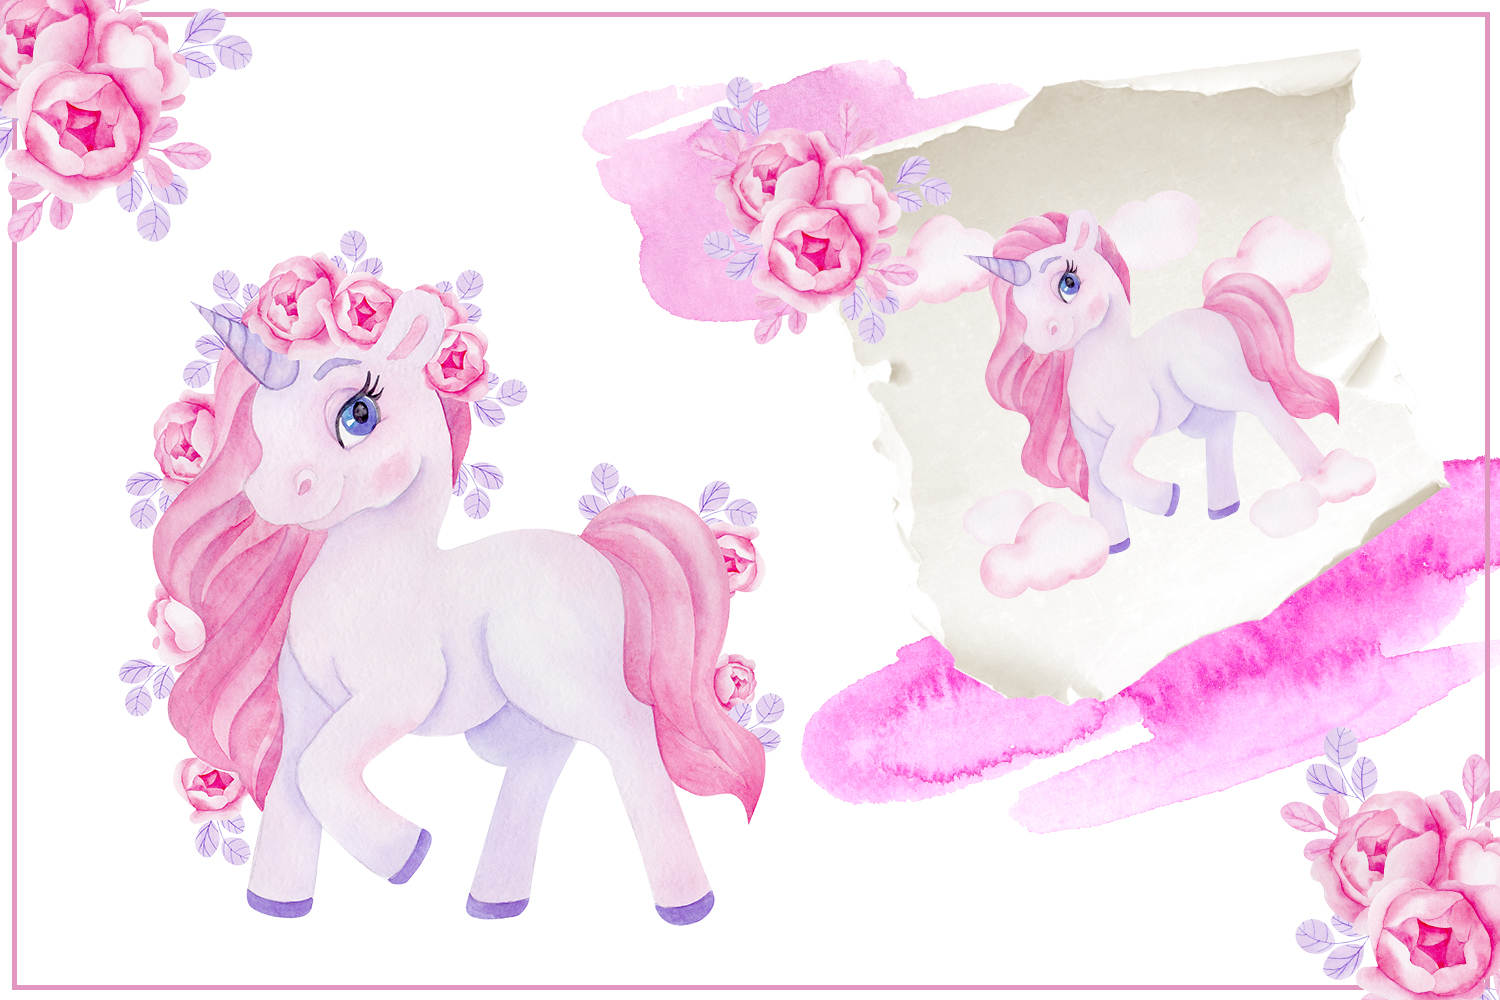 Cute unicorn. Illustrations and alphabet example image 4